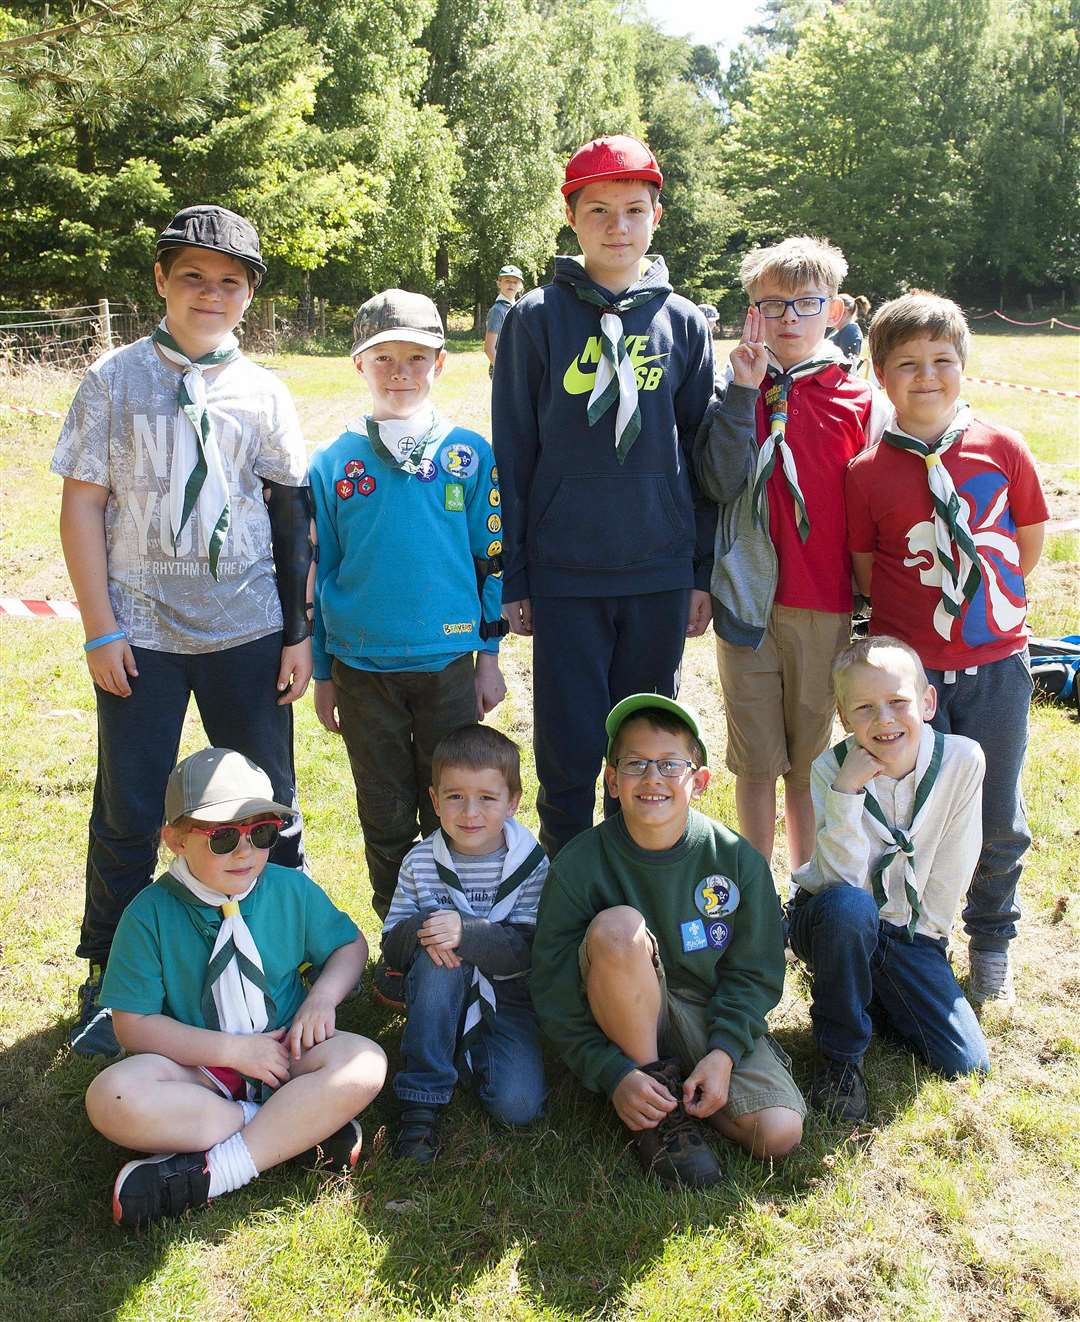 The 5th King's Lynn Scout Group celebrating 50th anniversary with family activities. PicturedScout Group at Wolverton Campsite. (2084491)